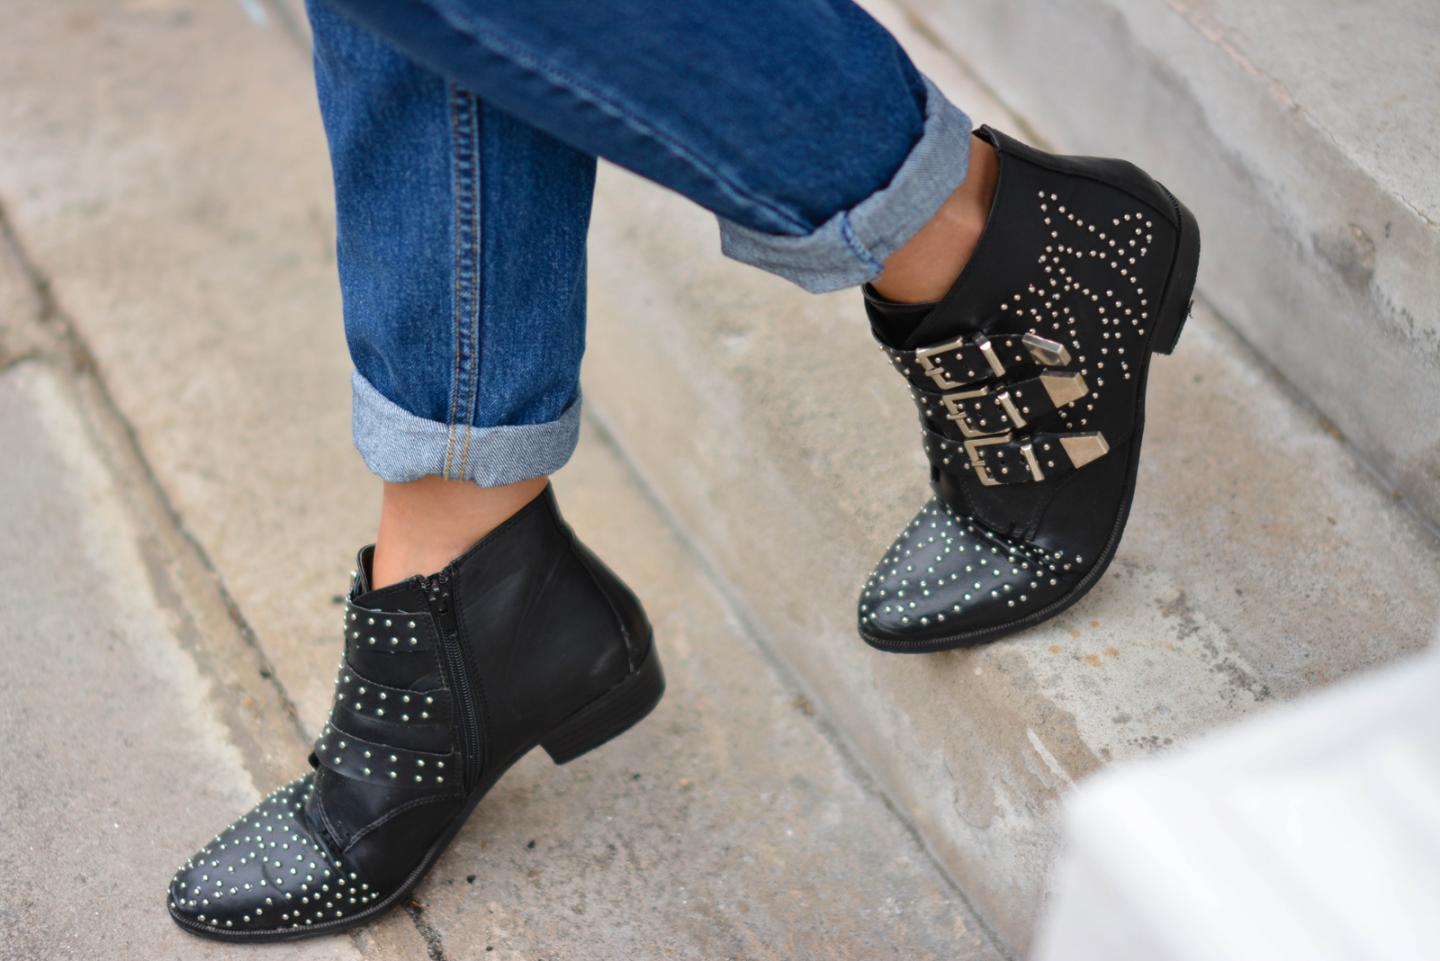 EJSTYLE - Emma Hill wears black studded chloe susanna style ankle boots